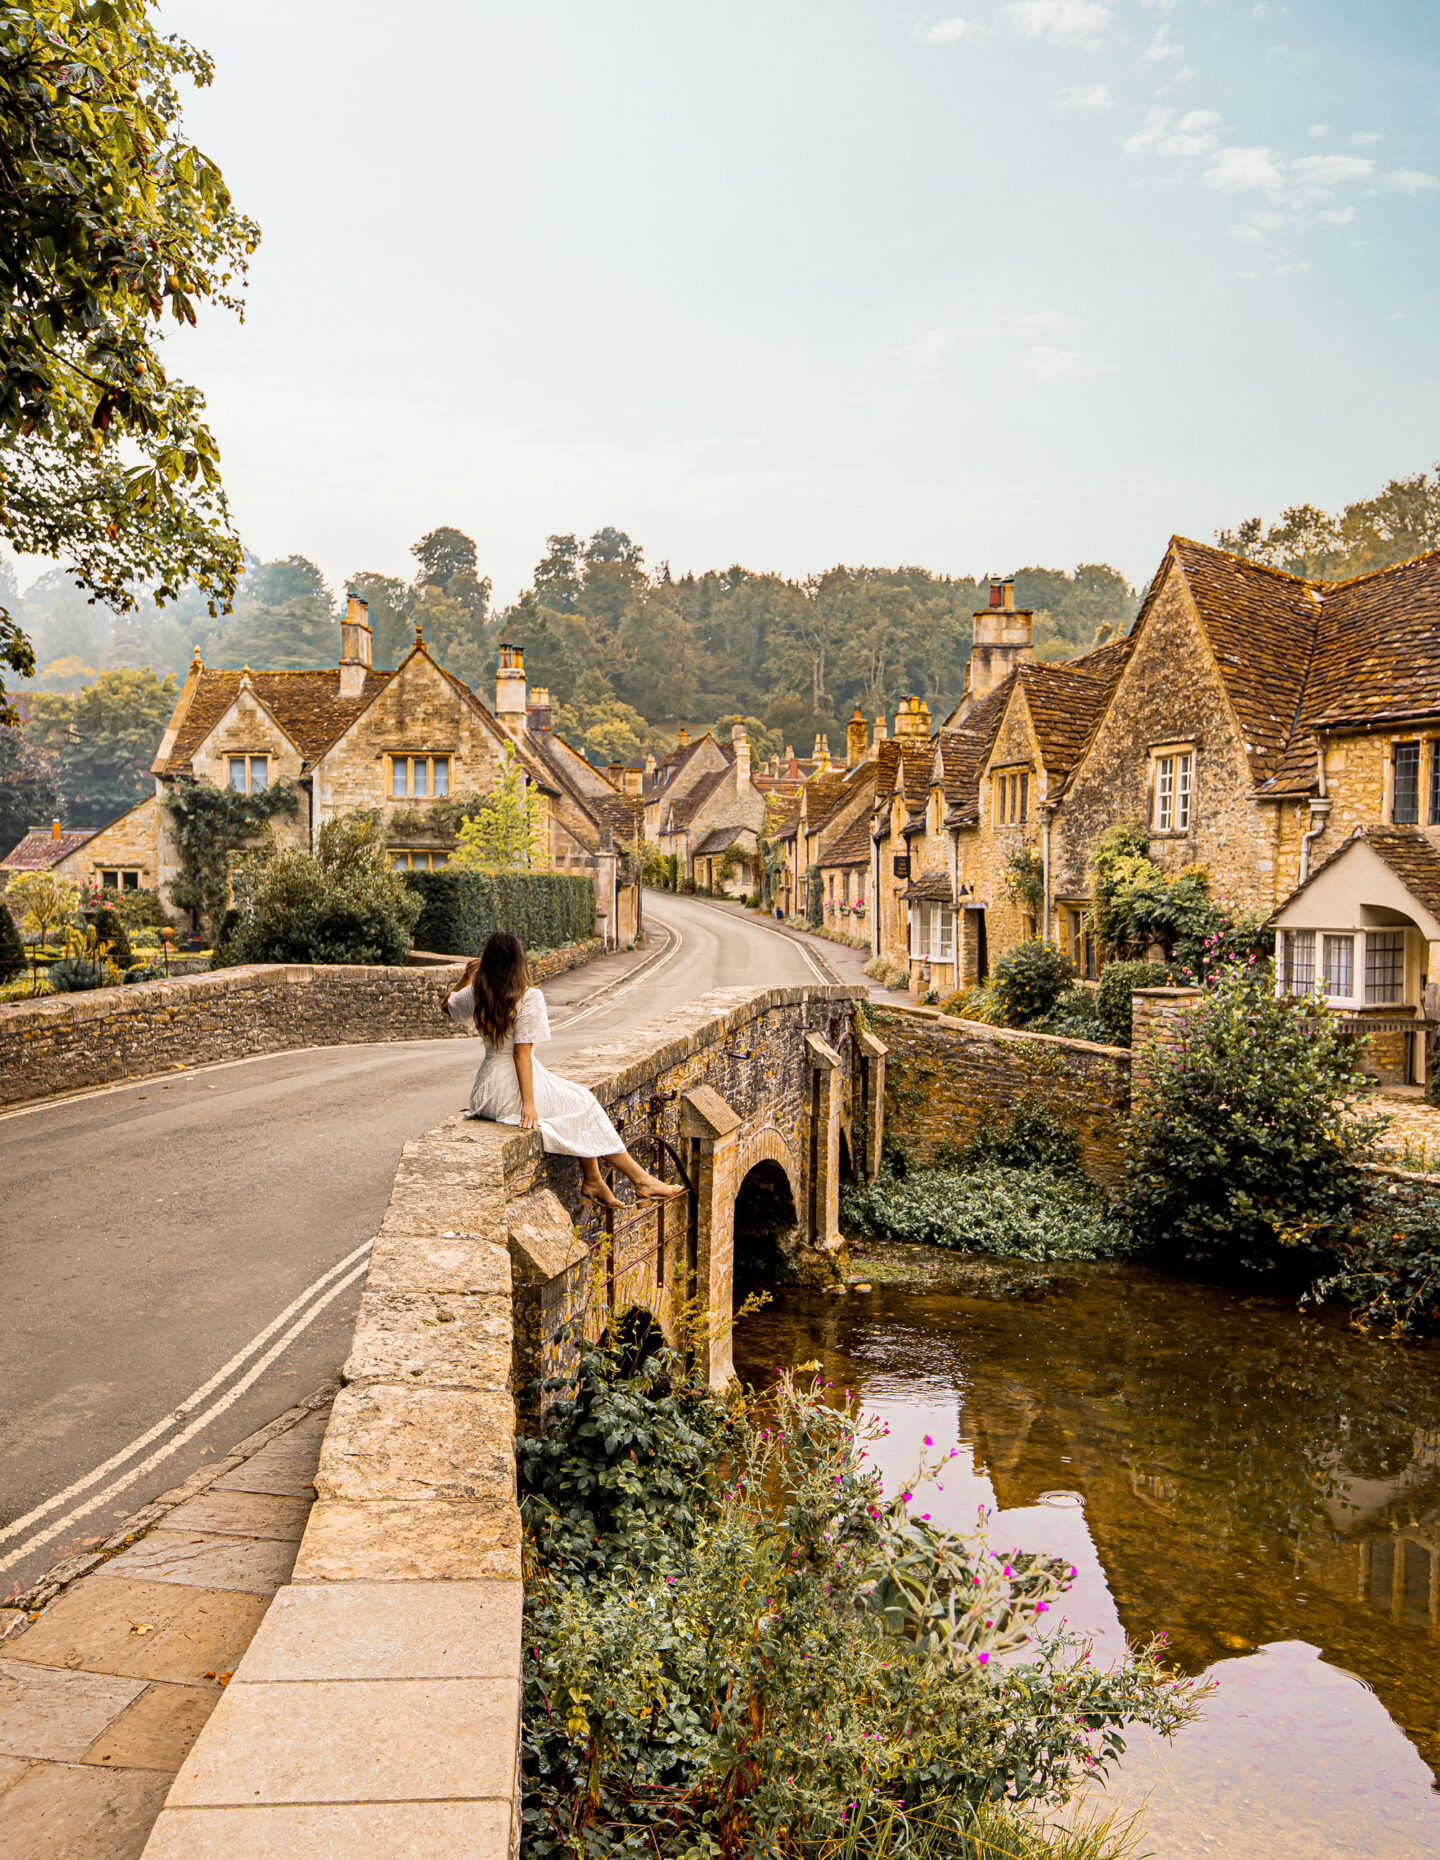 Uk road trip Somerset the cotswolds castle Combe Kelsey Heinrichs kelseyinlondon England travel camptoo campervan holiday the golden retriever experience